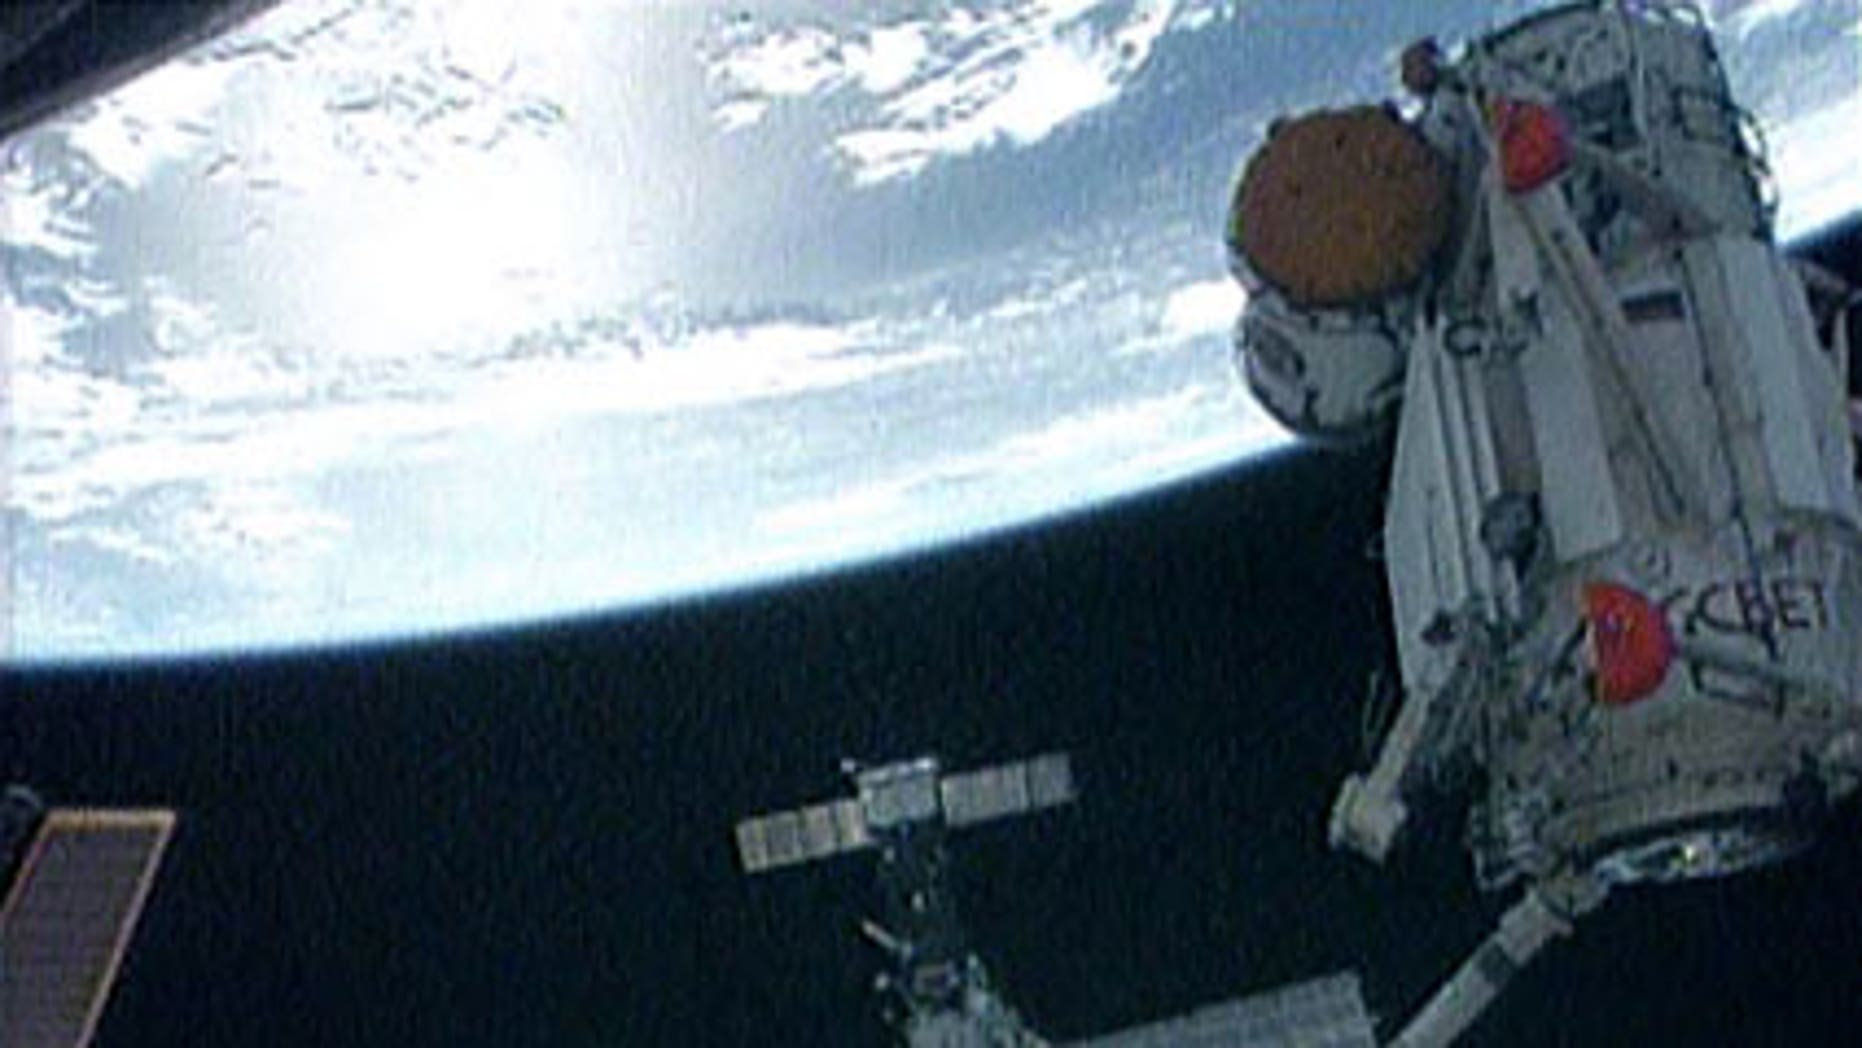 May 18: The International Space Station's robotic arm moves the Russian Mini-Research Module-1, named Rassvet, to its new position on the Russian segment of the station.